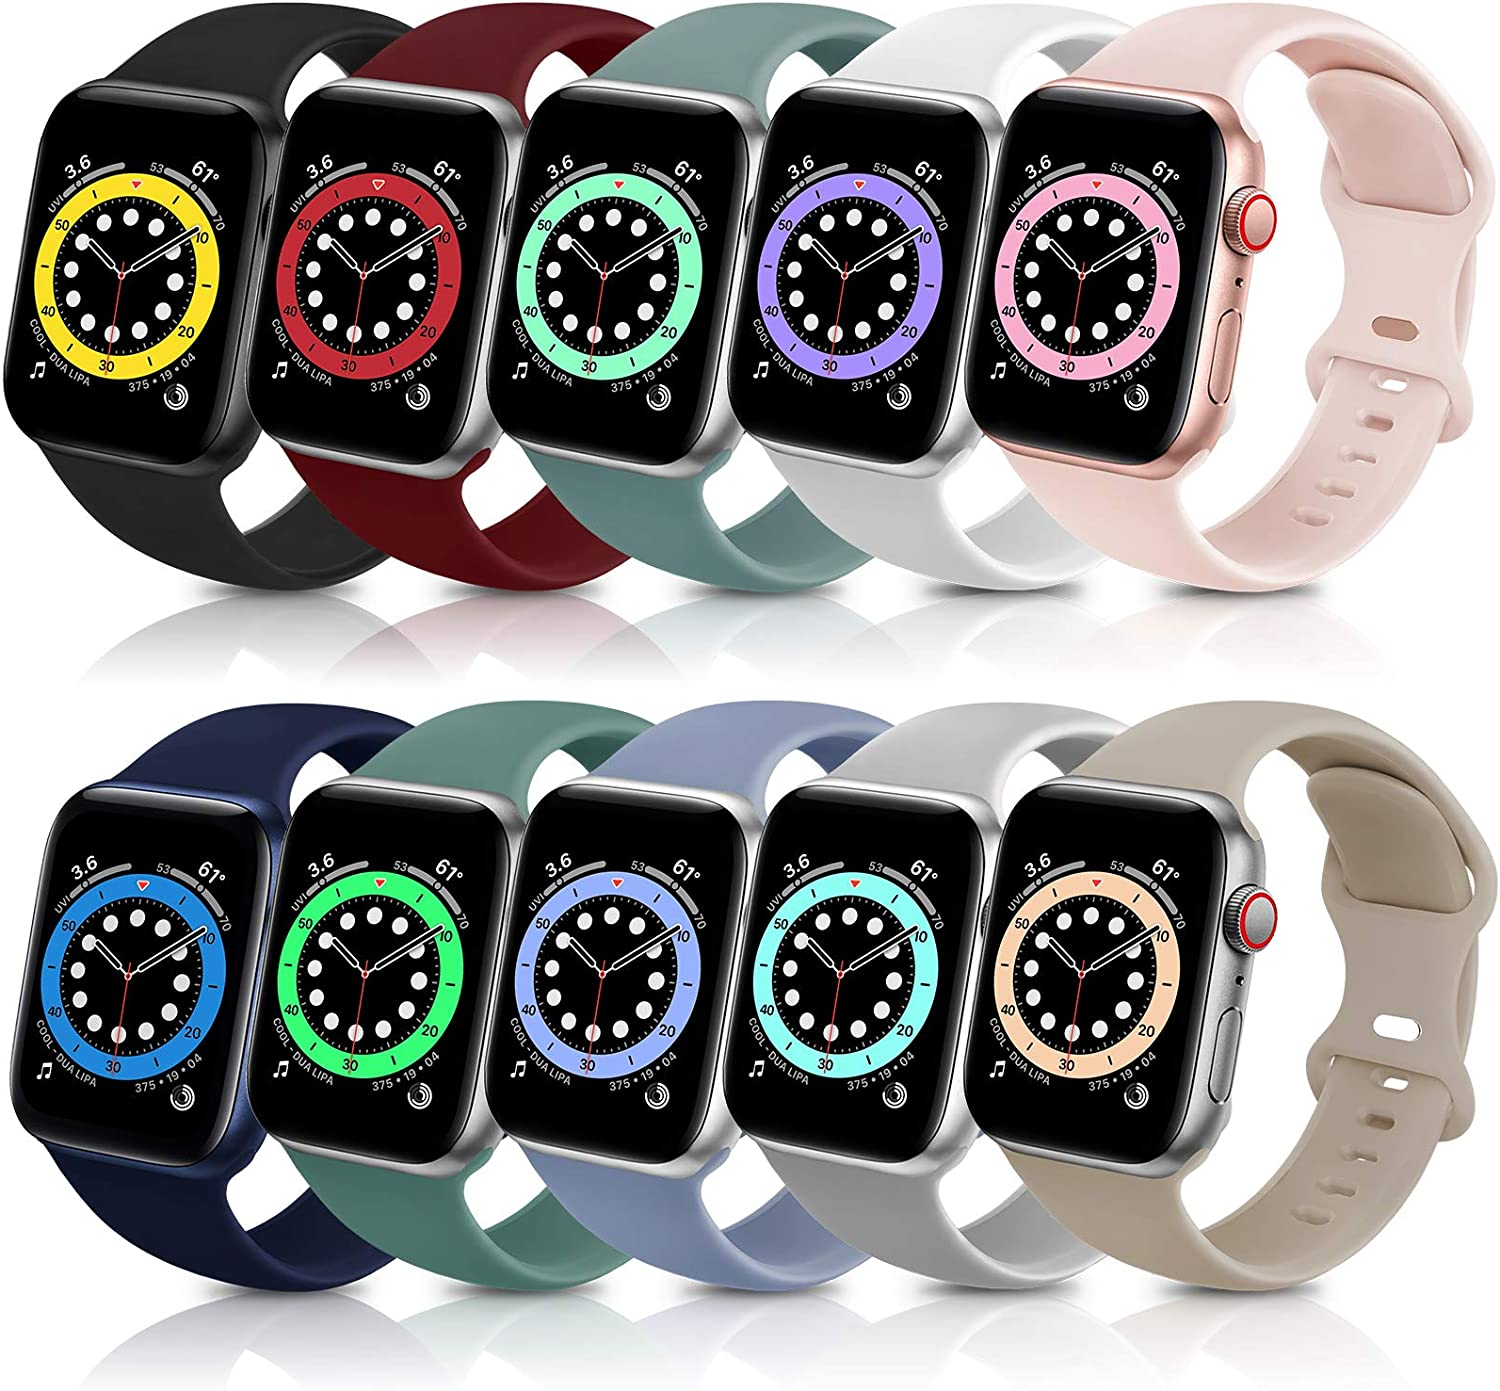 ZALAVER Bands Compatible with Apple Watch Band 38mm 40mm 42mm 44mm, Soft Silicone Sport Replacement Band Compatible with iWatch Series 6 5 4 3 2 1 Women Men Multi Colors 42mm/44mm S/M